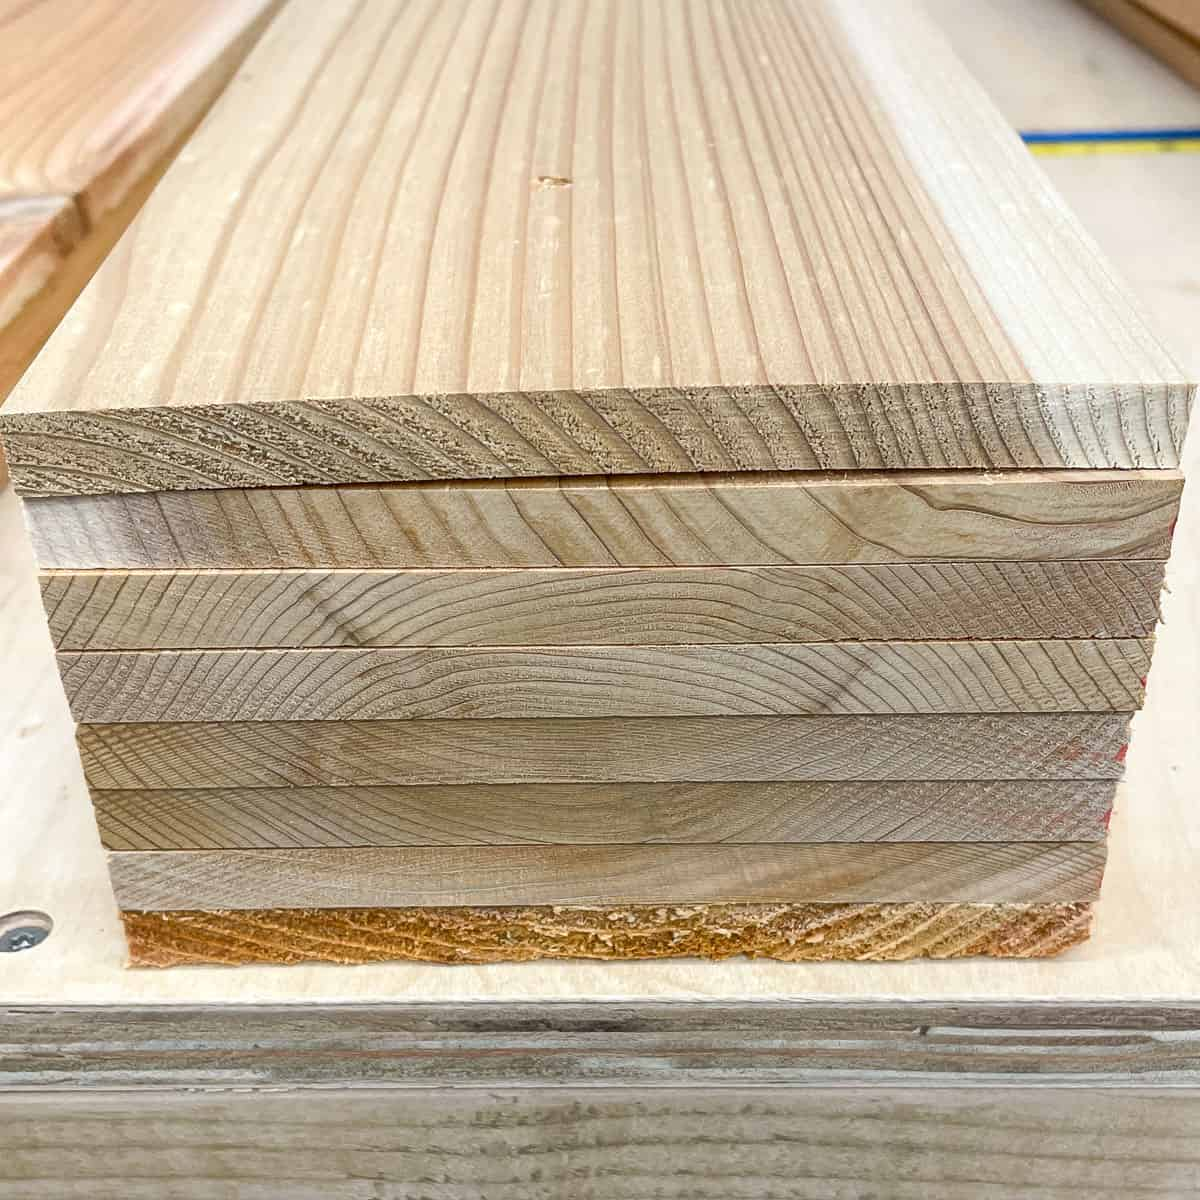 cedar fence pickets in a stack